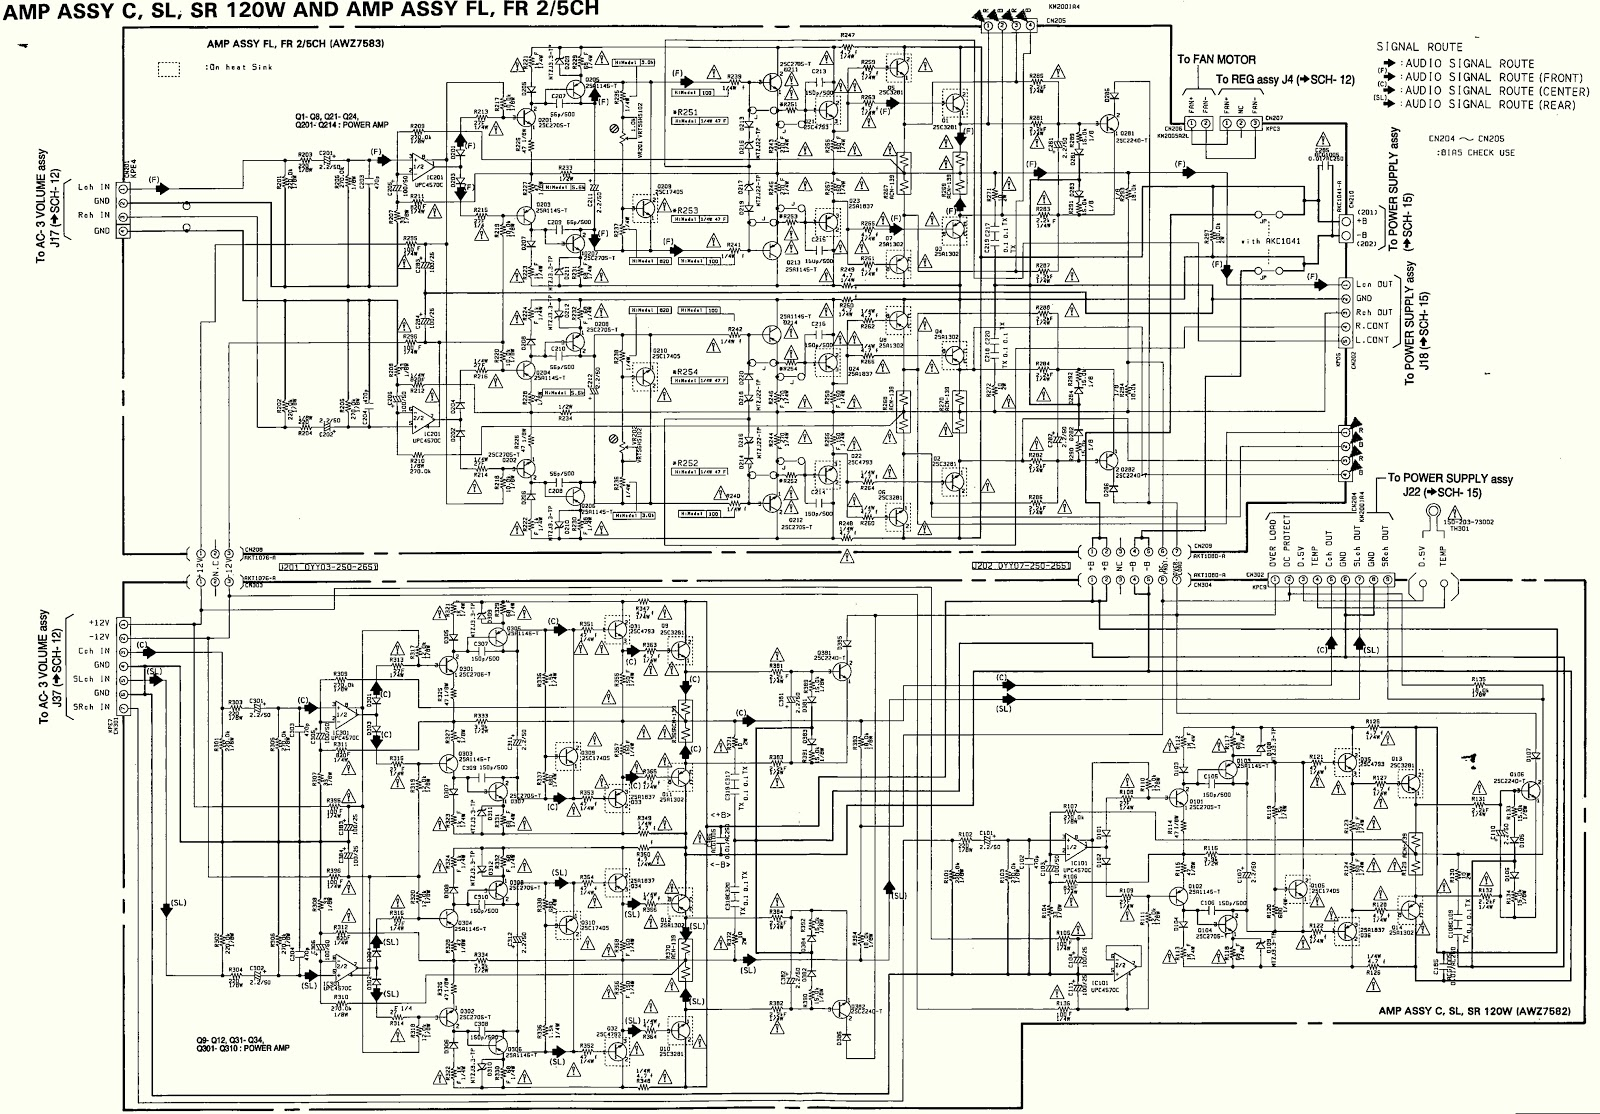 First Robotics Wiring Diagram additionally Atlas Relay Wiring together with Is300 Wiring Diagram further Kohler 14 Hp Wiring Diagram Free Download additionally Watch. on pioneer deh wiring